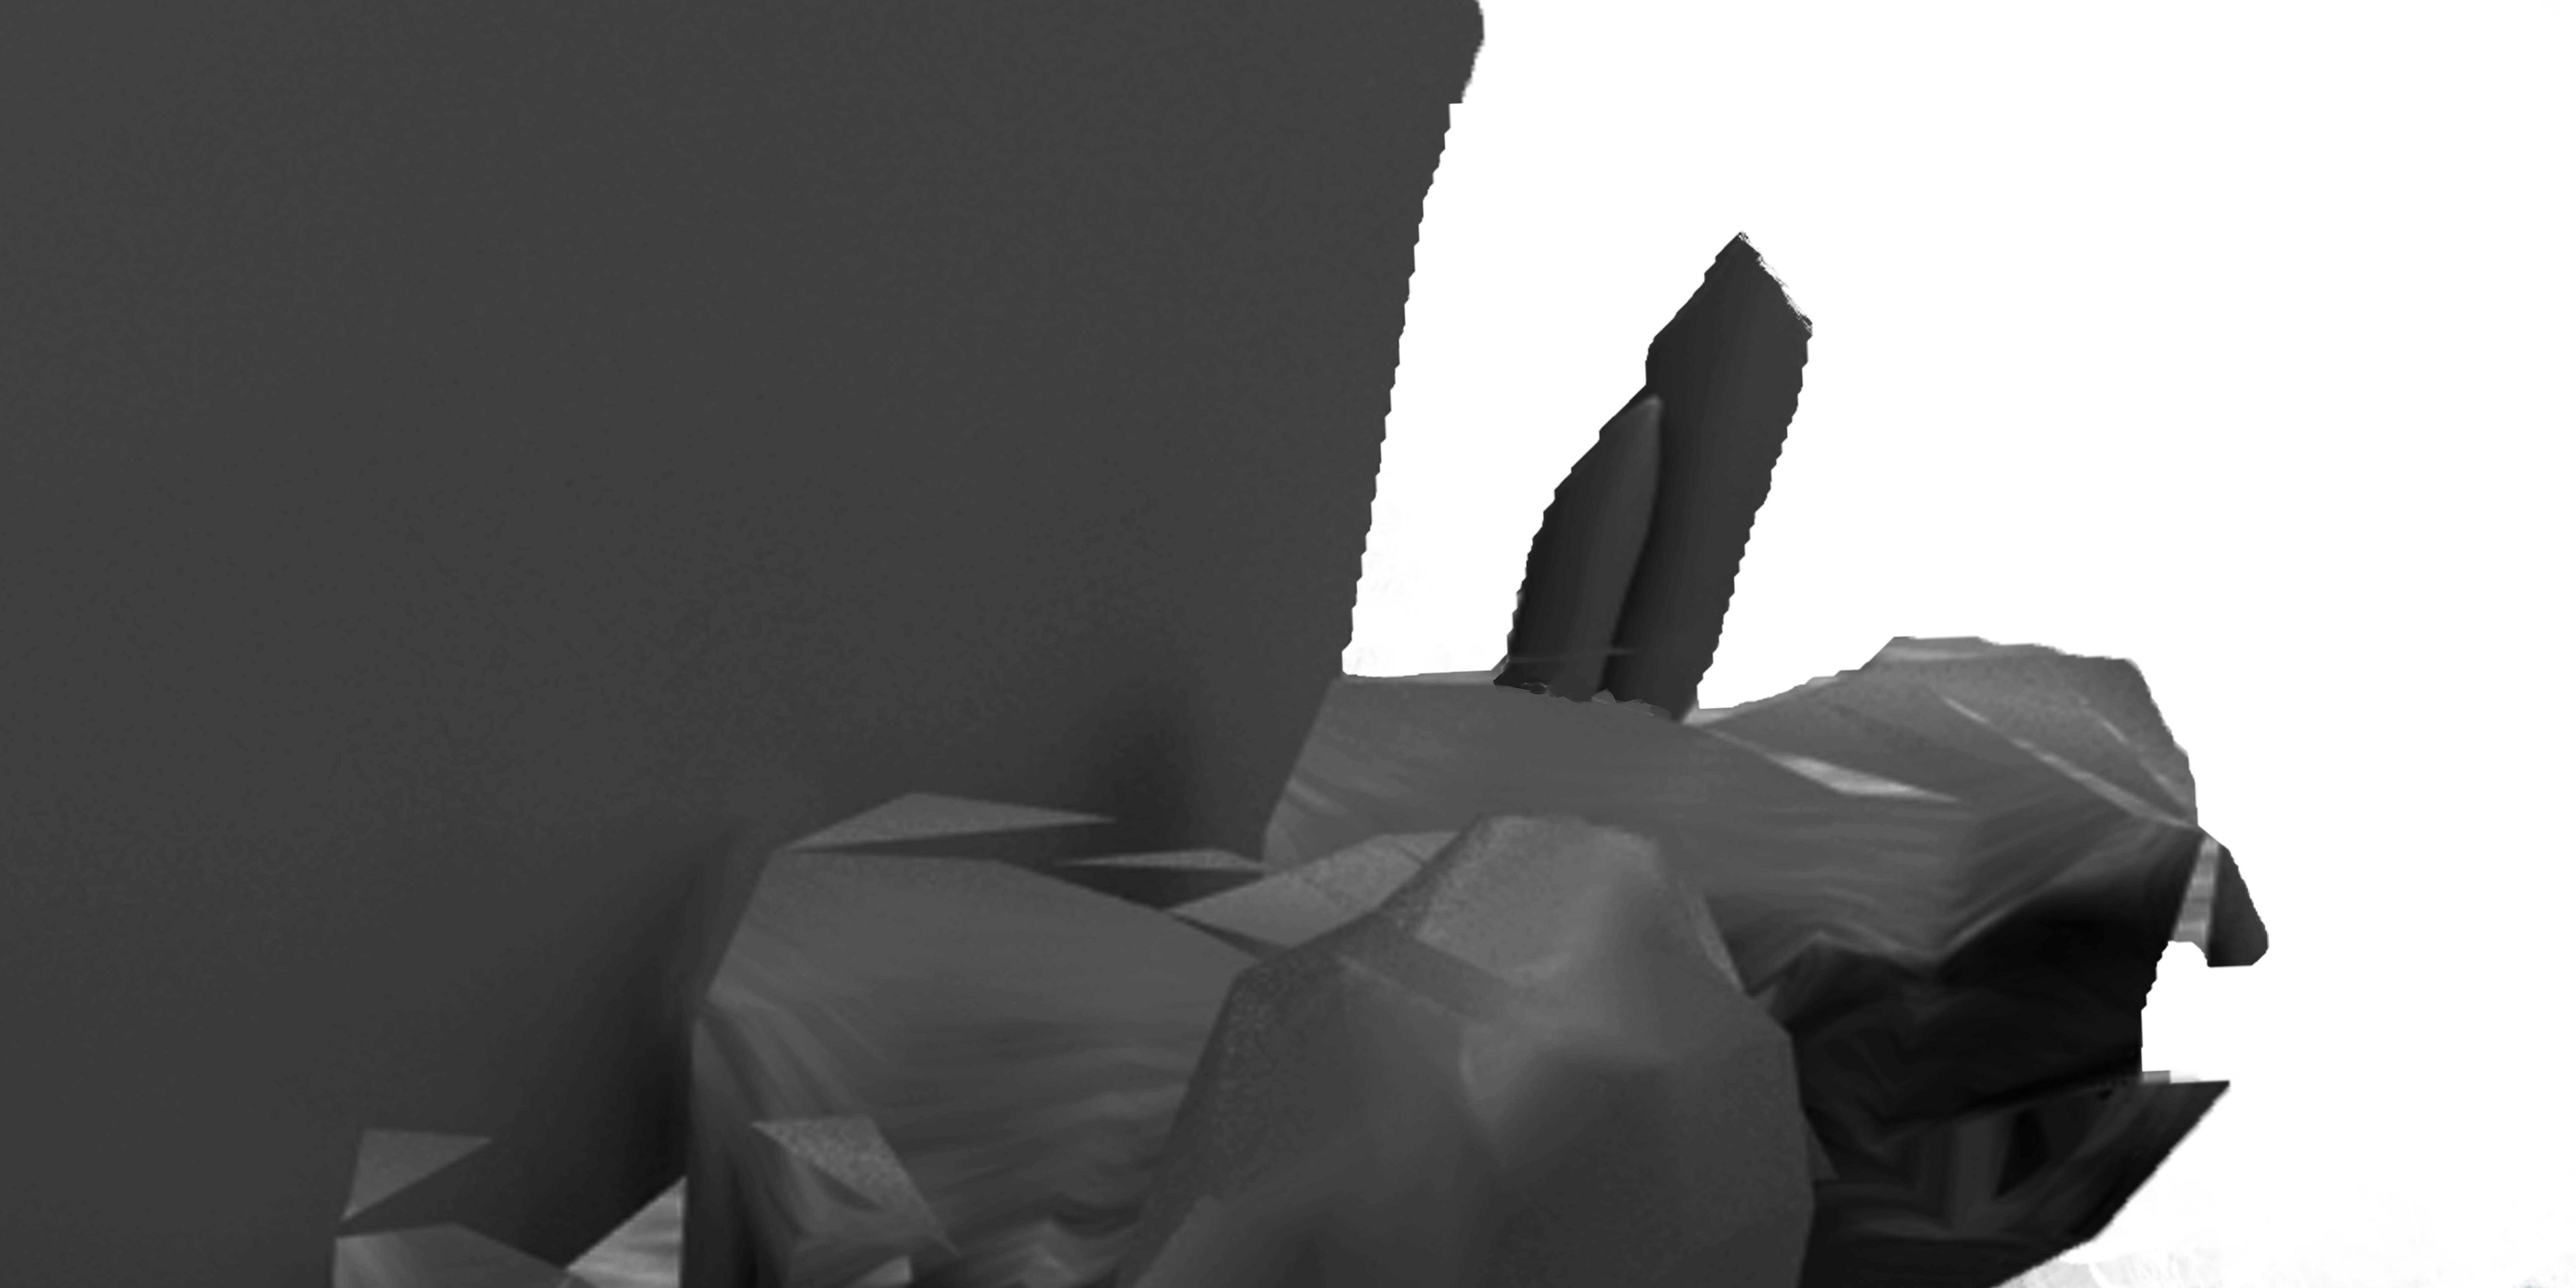 The terrible 3D base I modelled. I'm hoping to get better at this step.